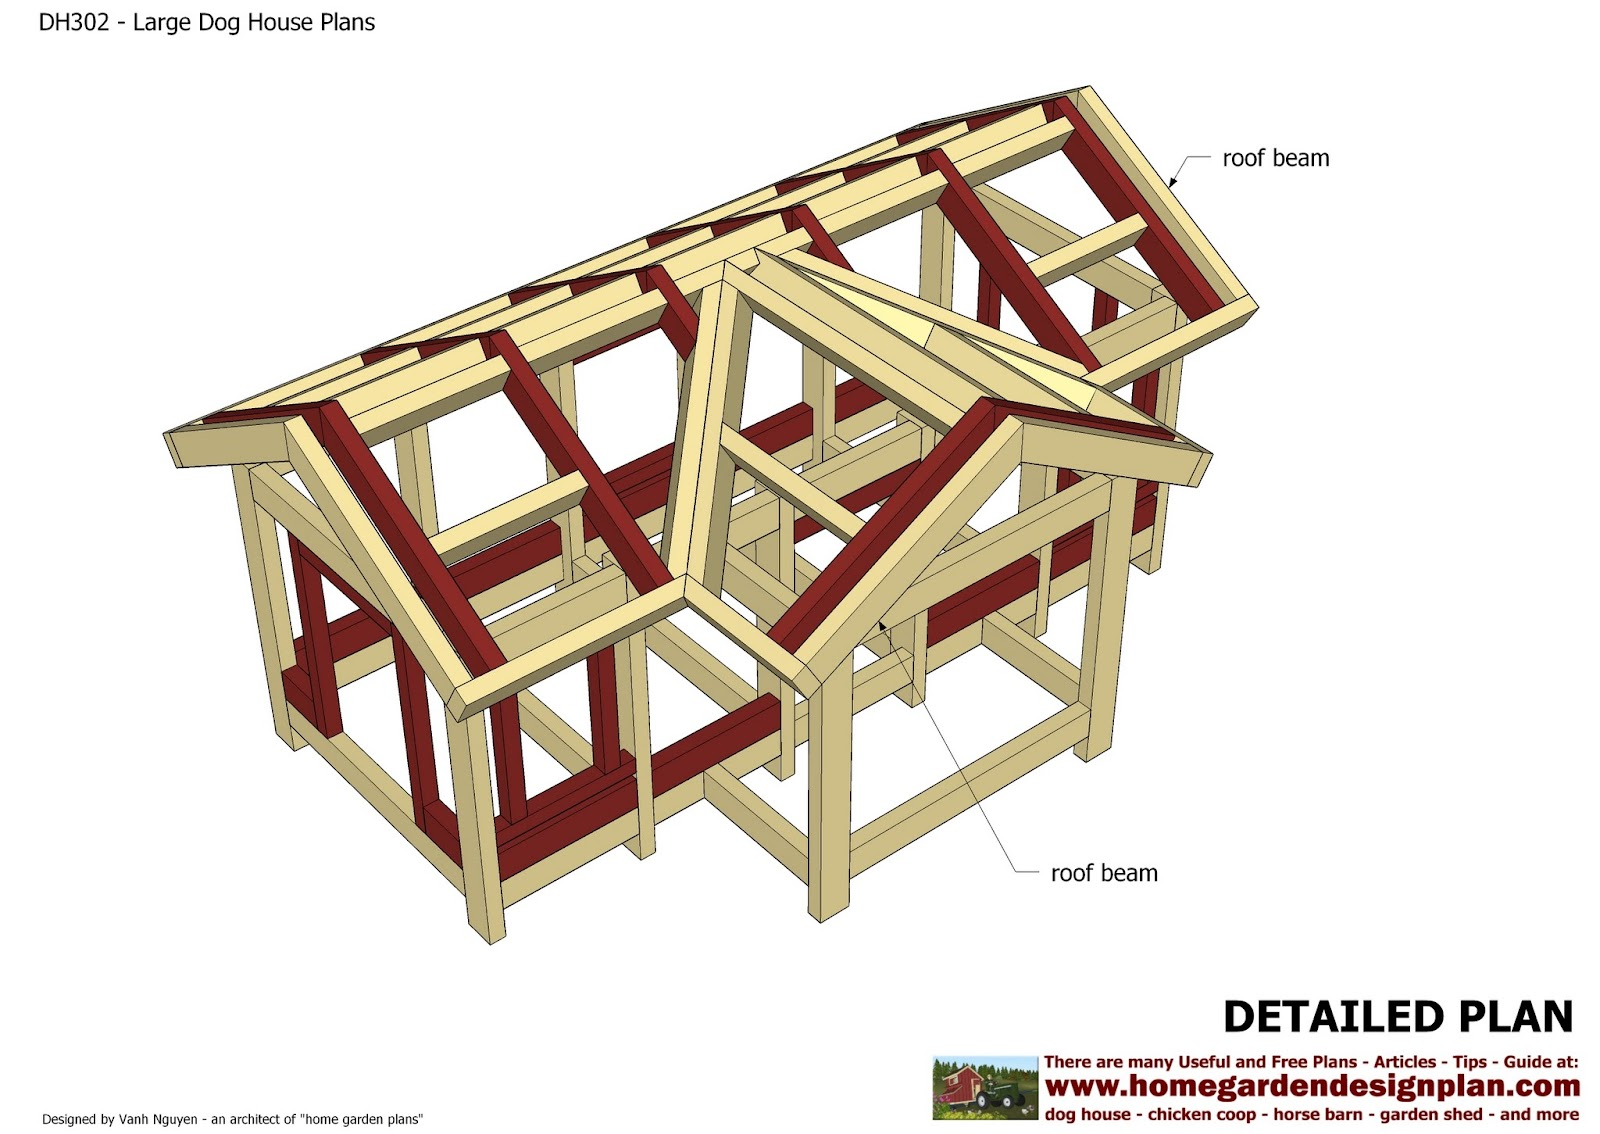 Home garden plans dh302 insulated dog house plans for Kennel construction plans